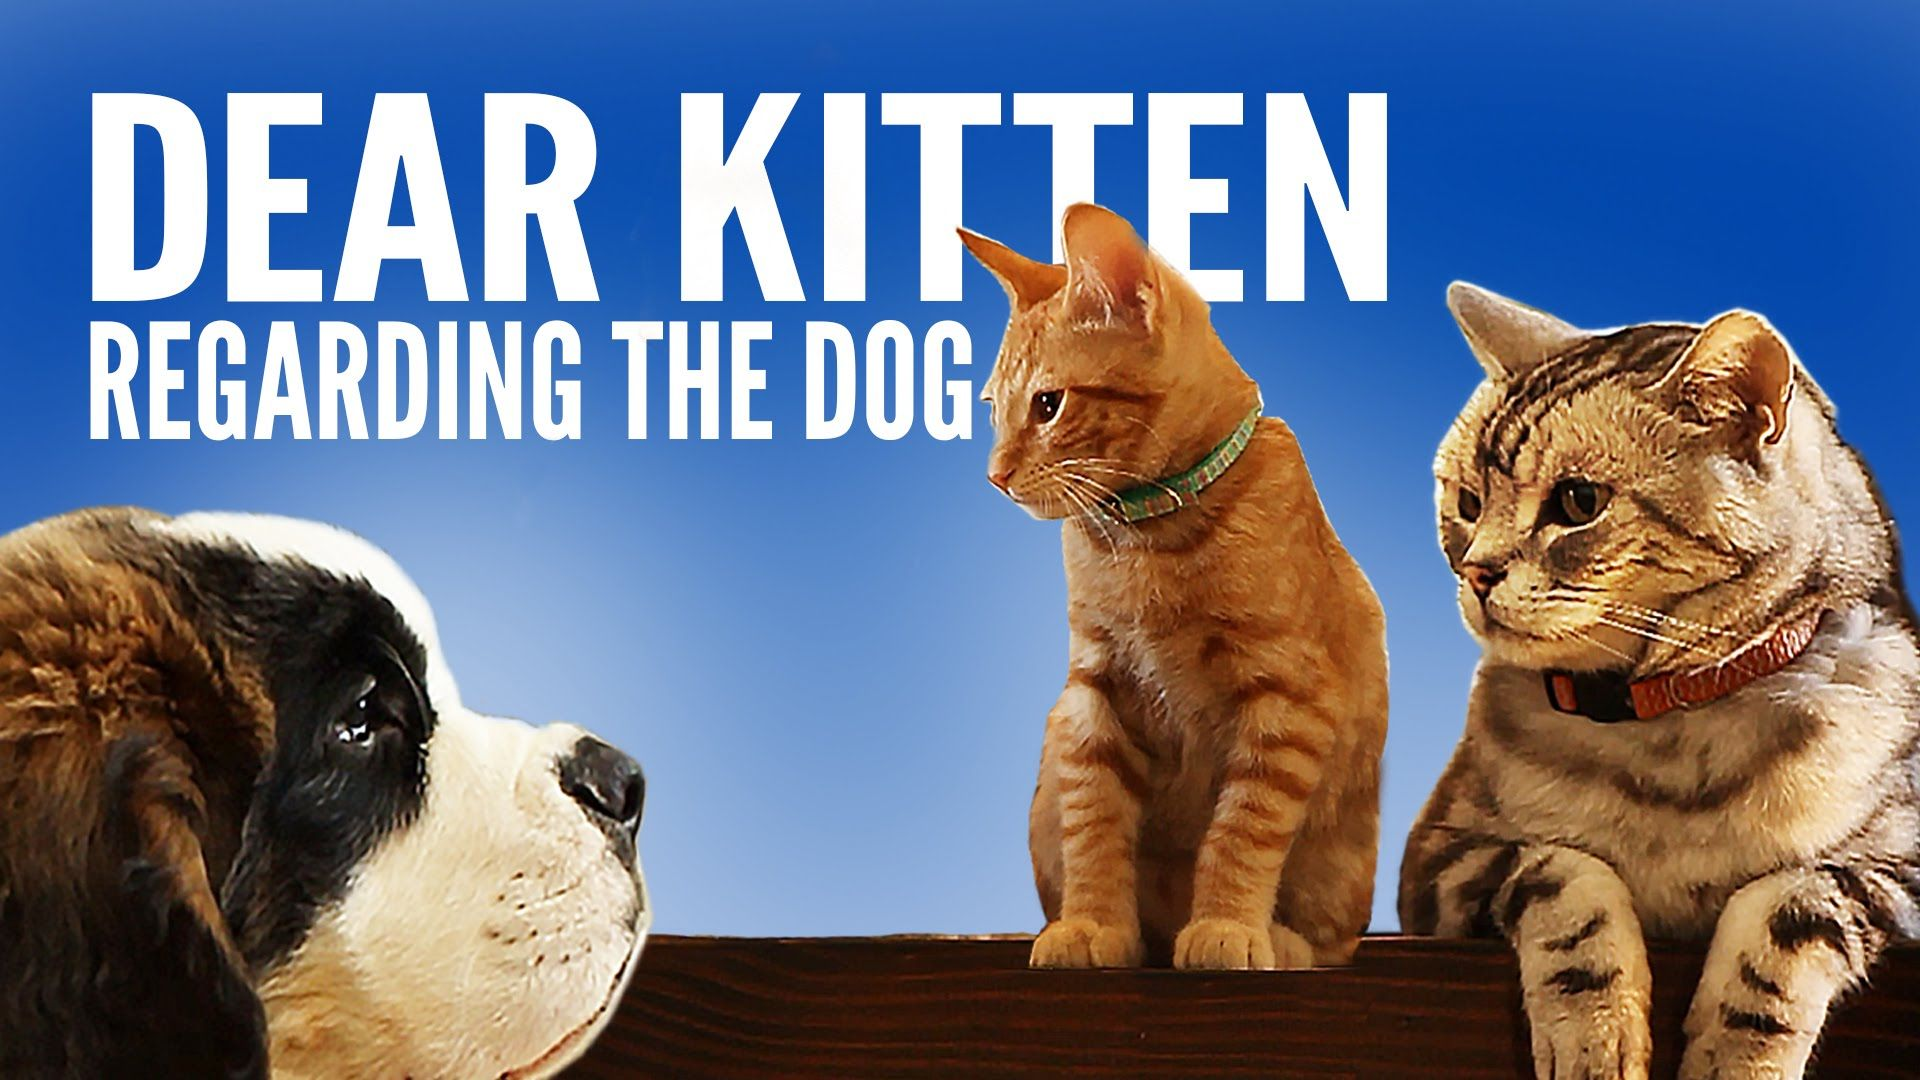 An Older Cat Explains The Concept Of Dogs To A Young Kitten In New Episodes Of Dear Kitten Funny Cats And Dogs Cats Kitten